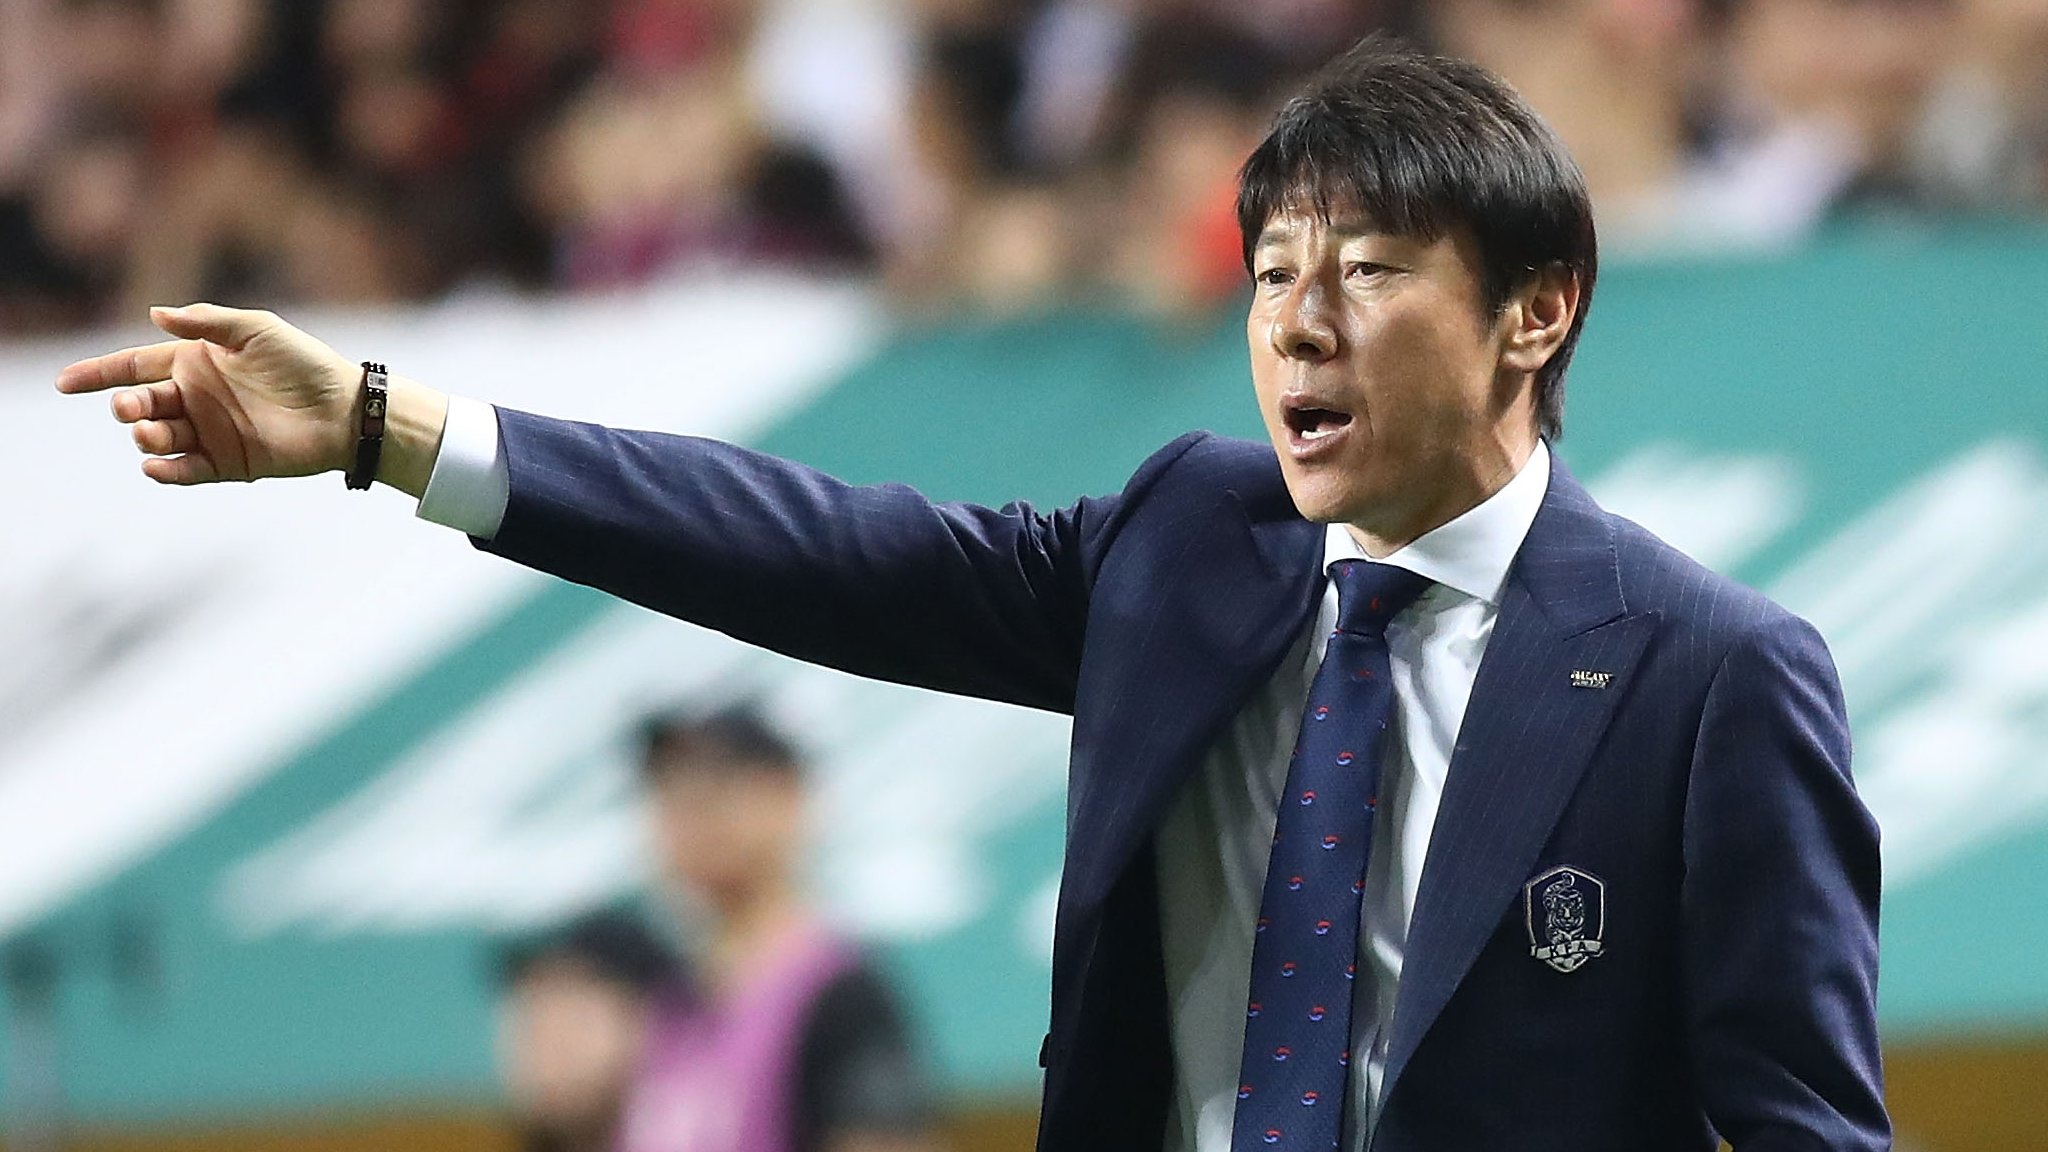 South Korea coach made players swap shirts to try to confuse opposition